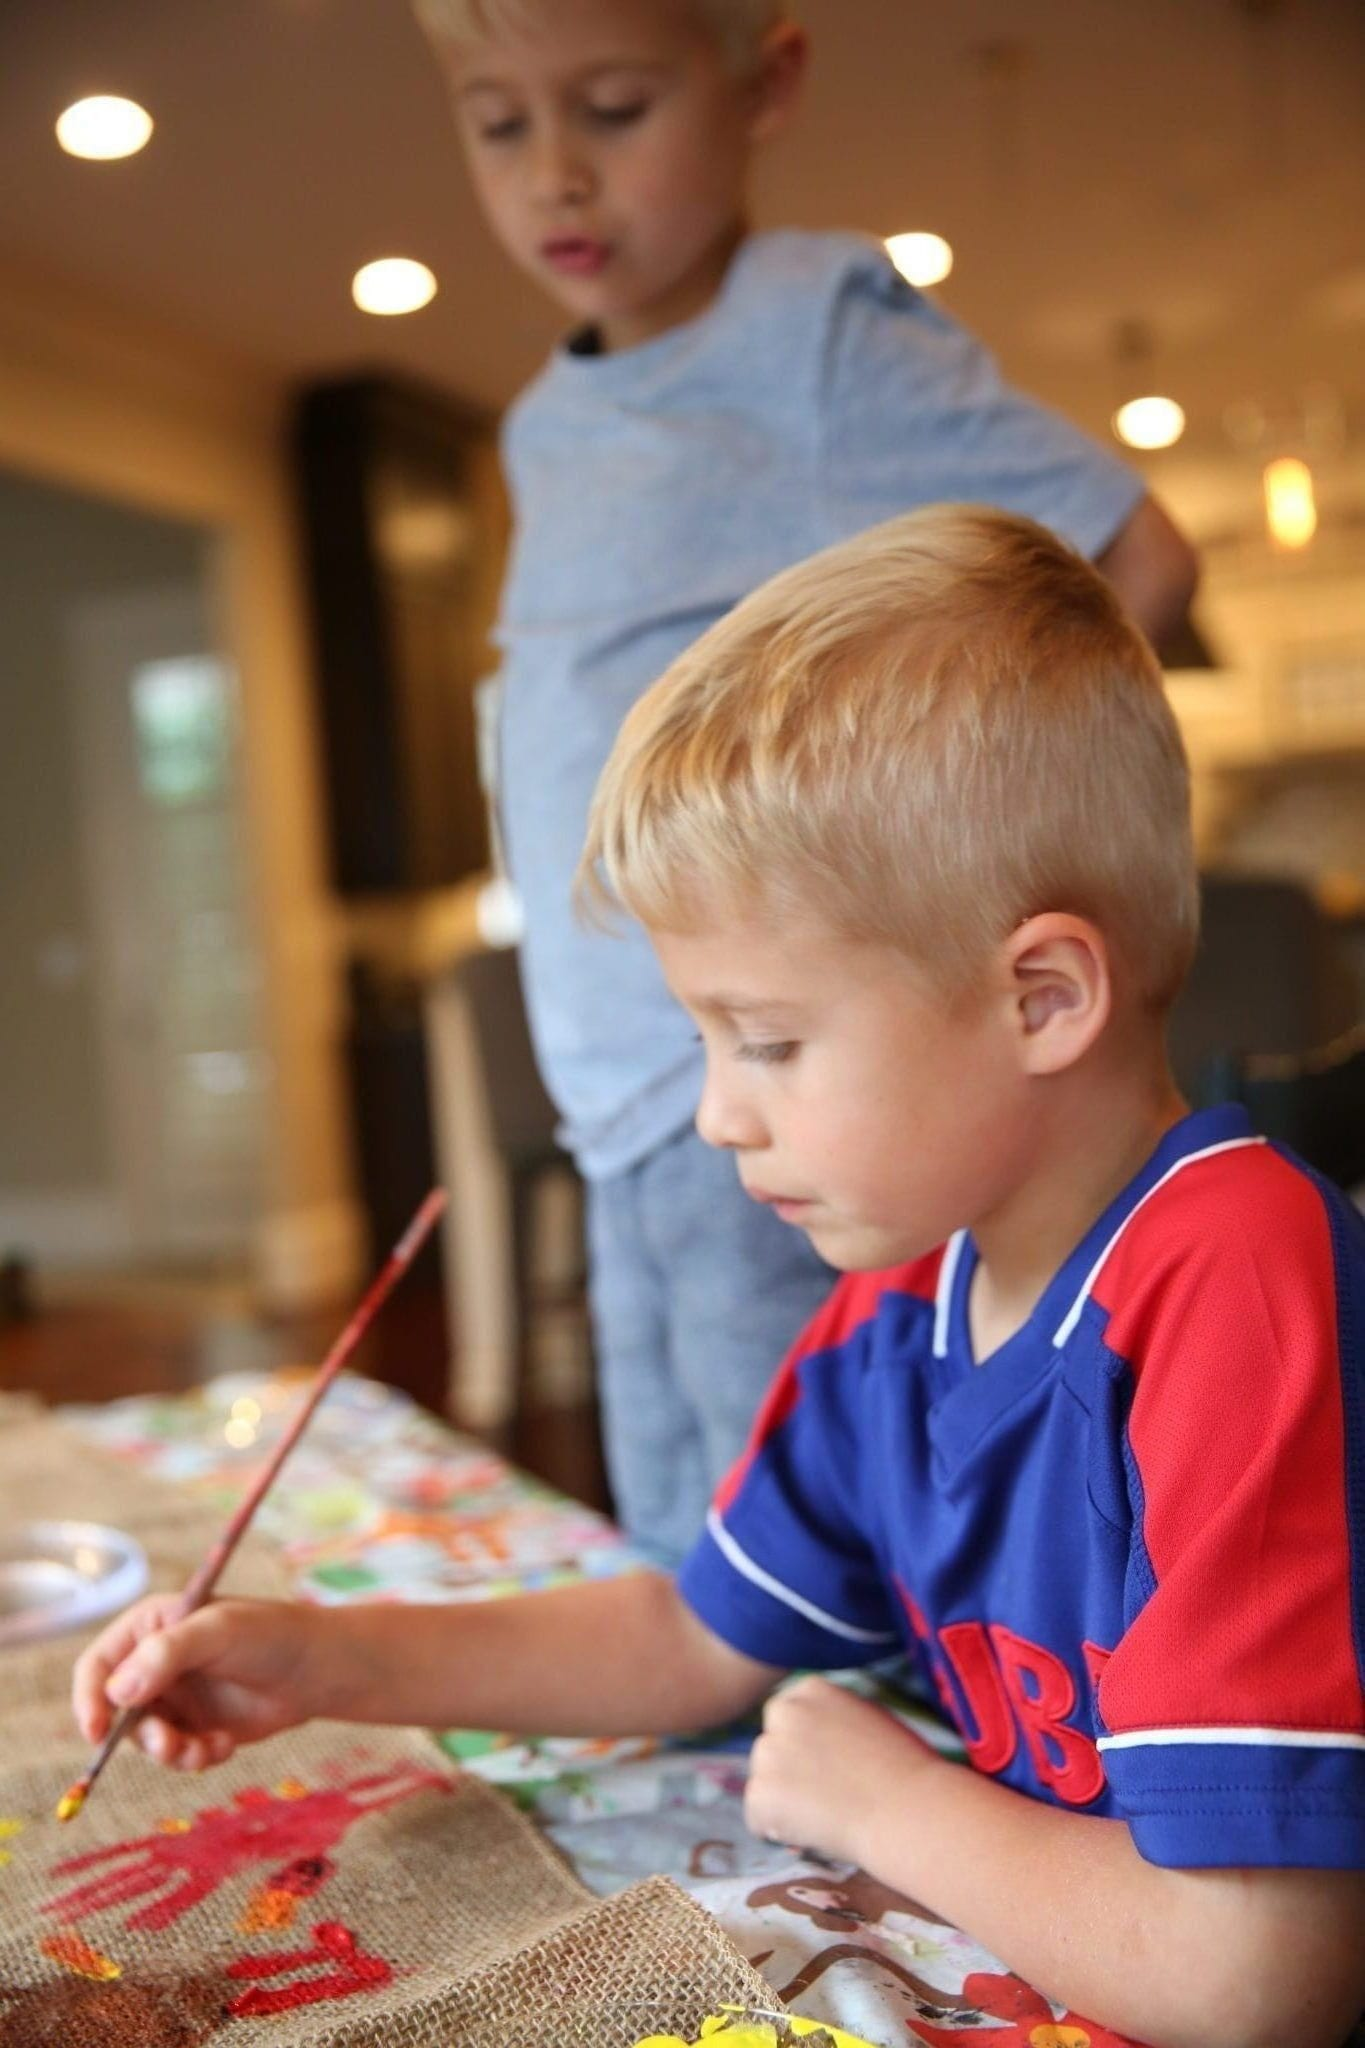 Craft for kids for Thanksgiving. Paint a kids table craft.